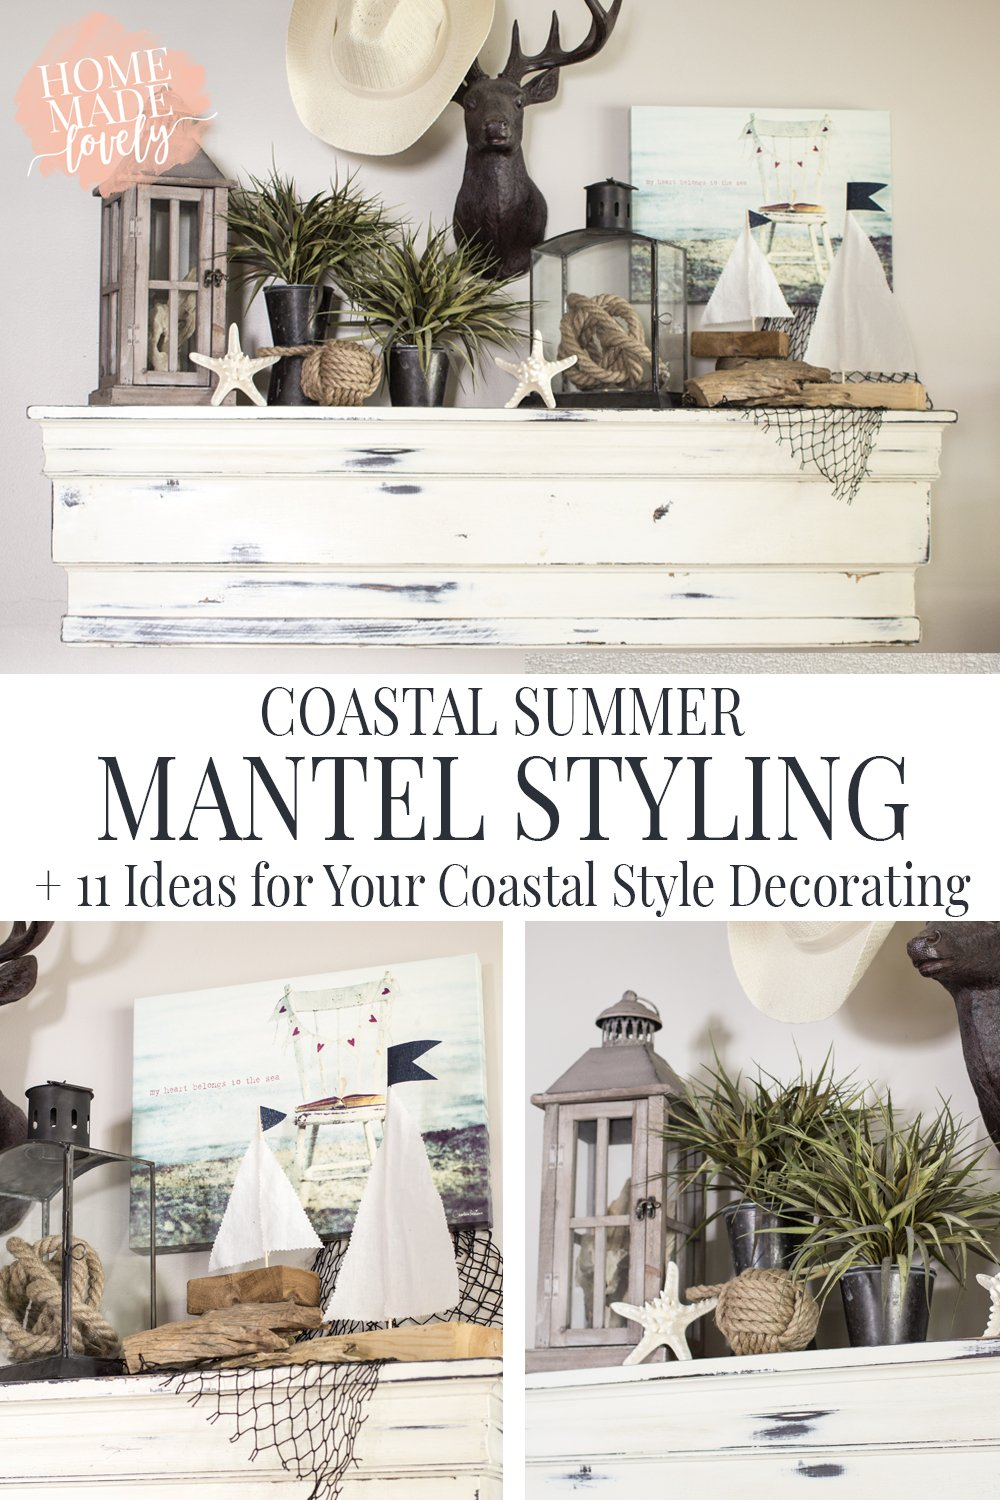 Coastal Summer Mantel Styling + 11 Ideas for Your Coastal Style Decorating